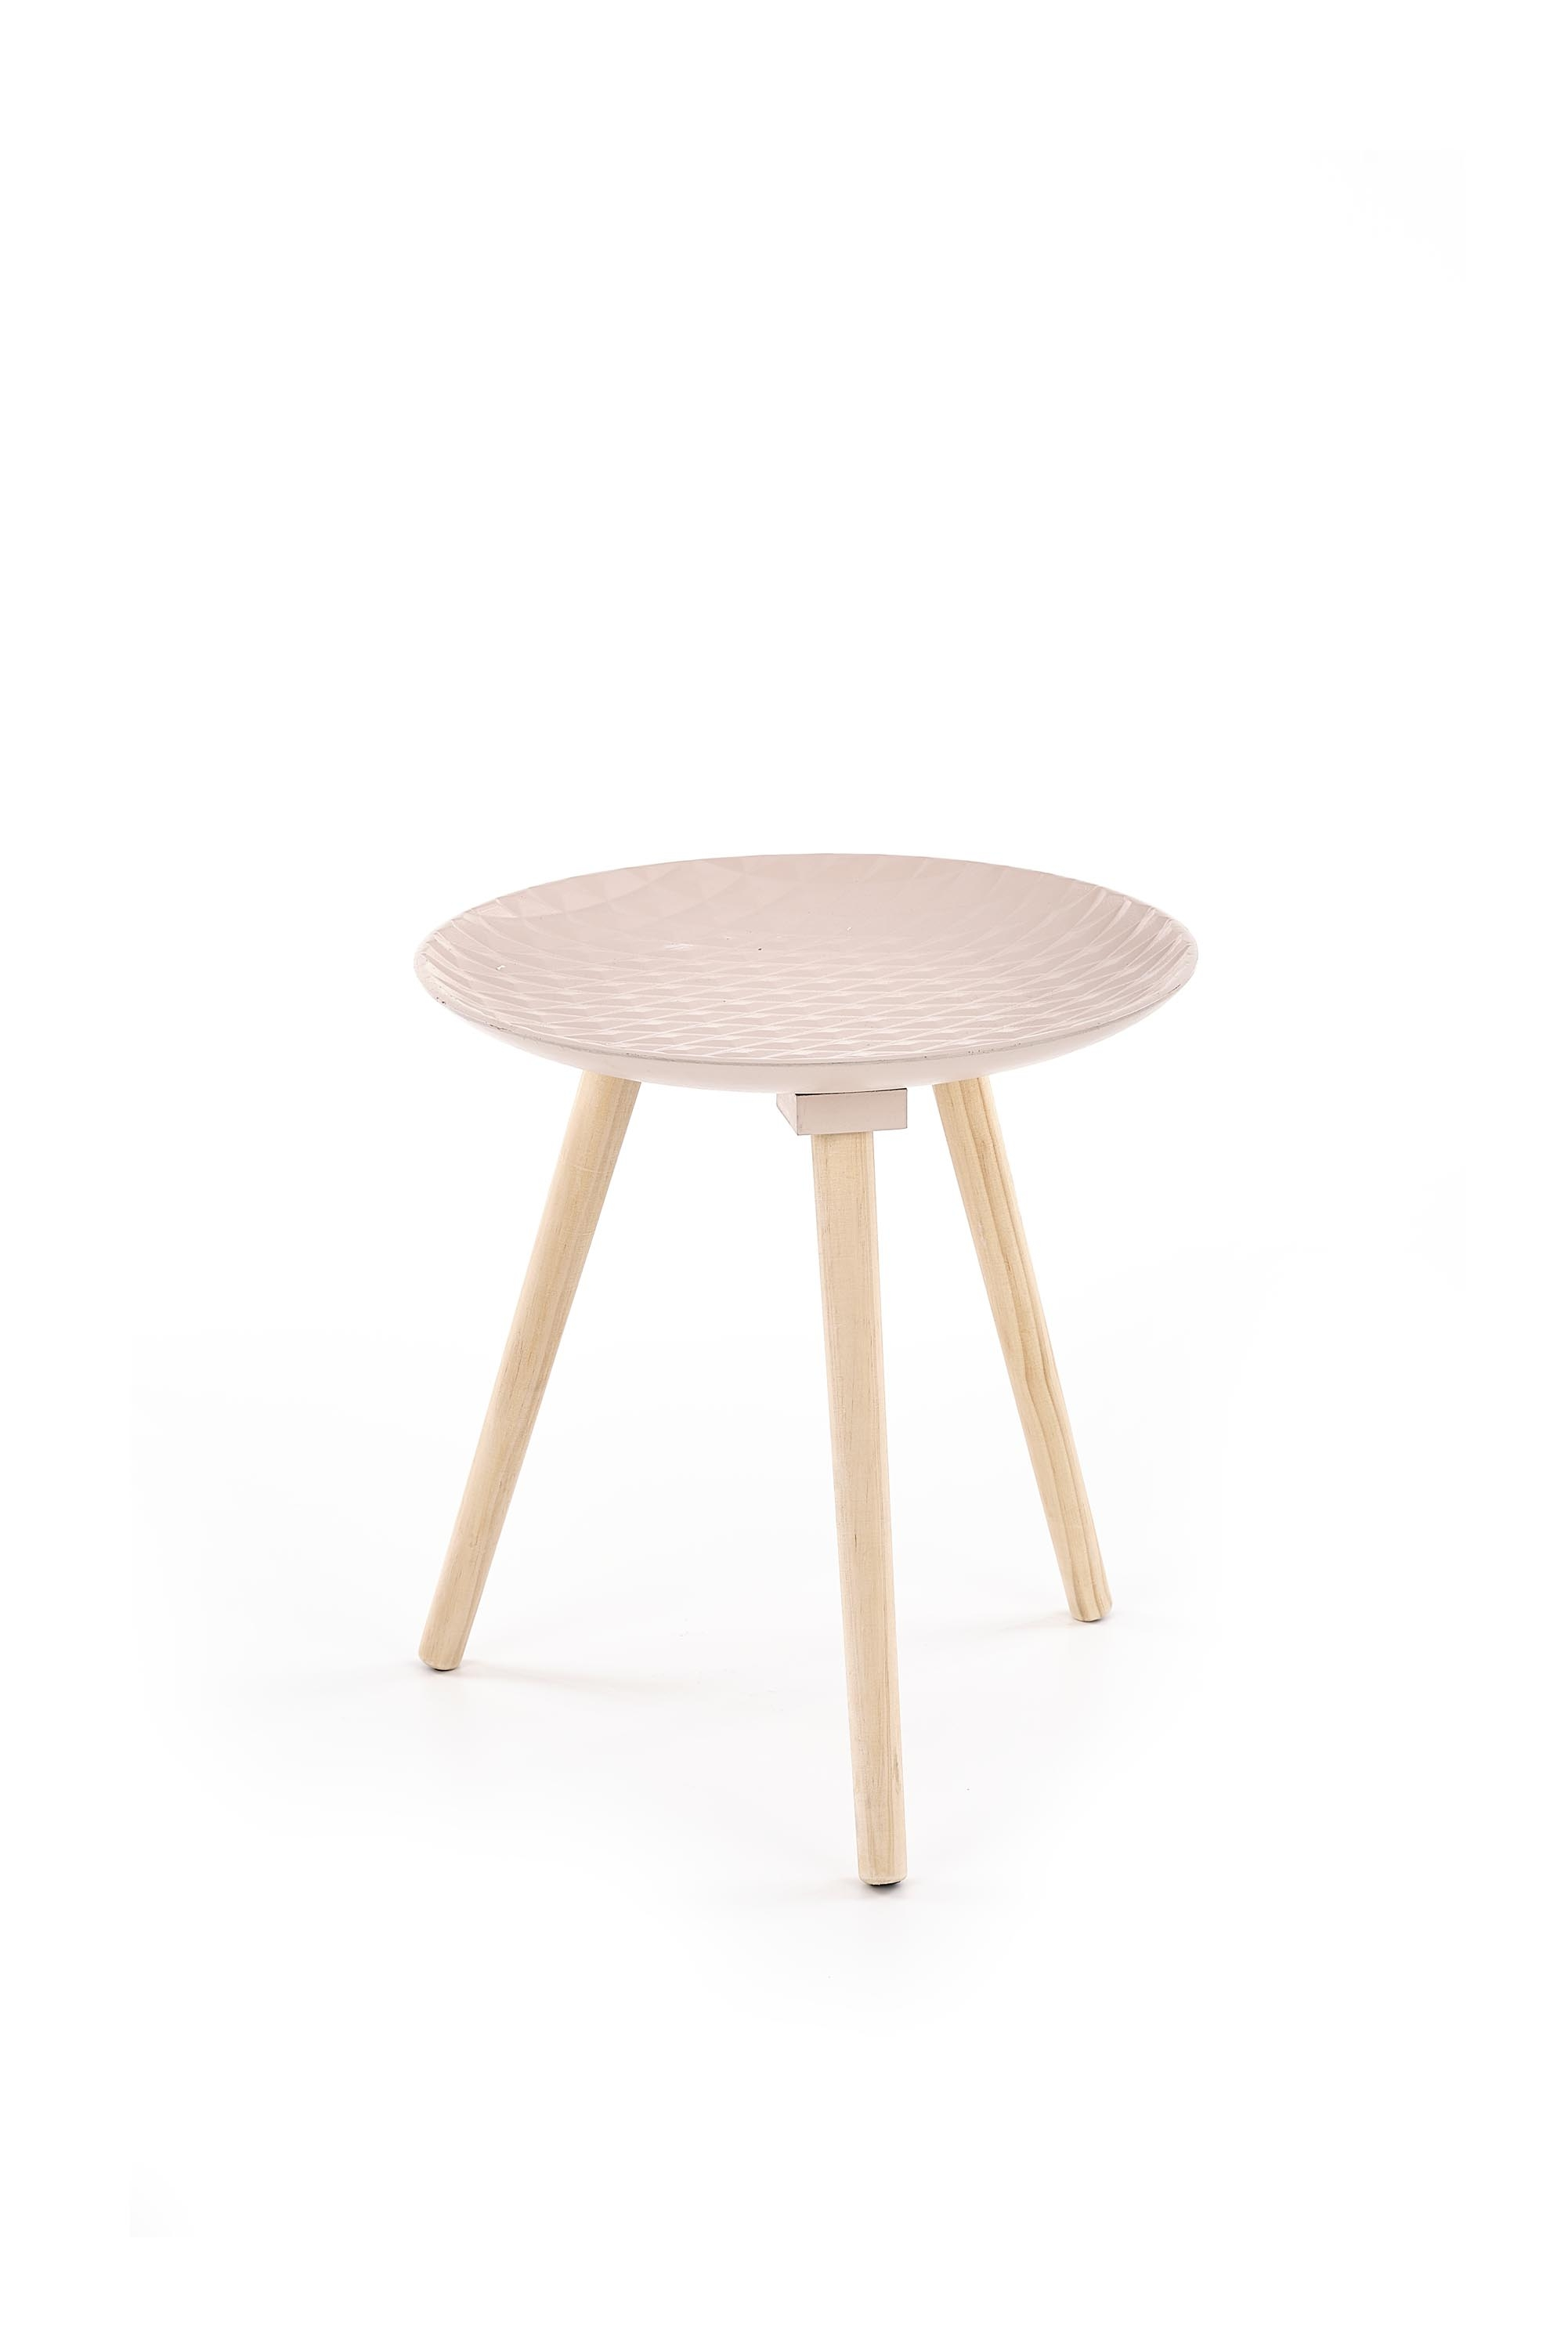 Masa de cafea din MDF si lemn de pin Bingo Light Pink, Ø40xH42 cm imagine